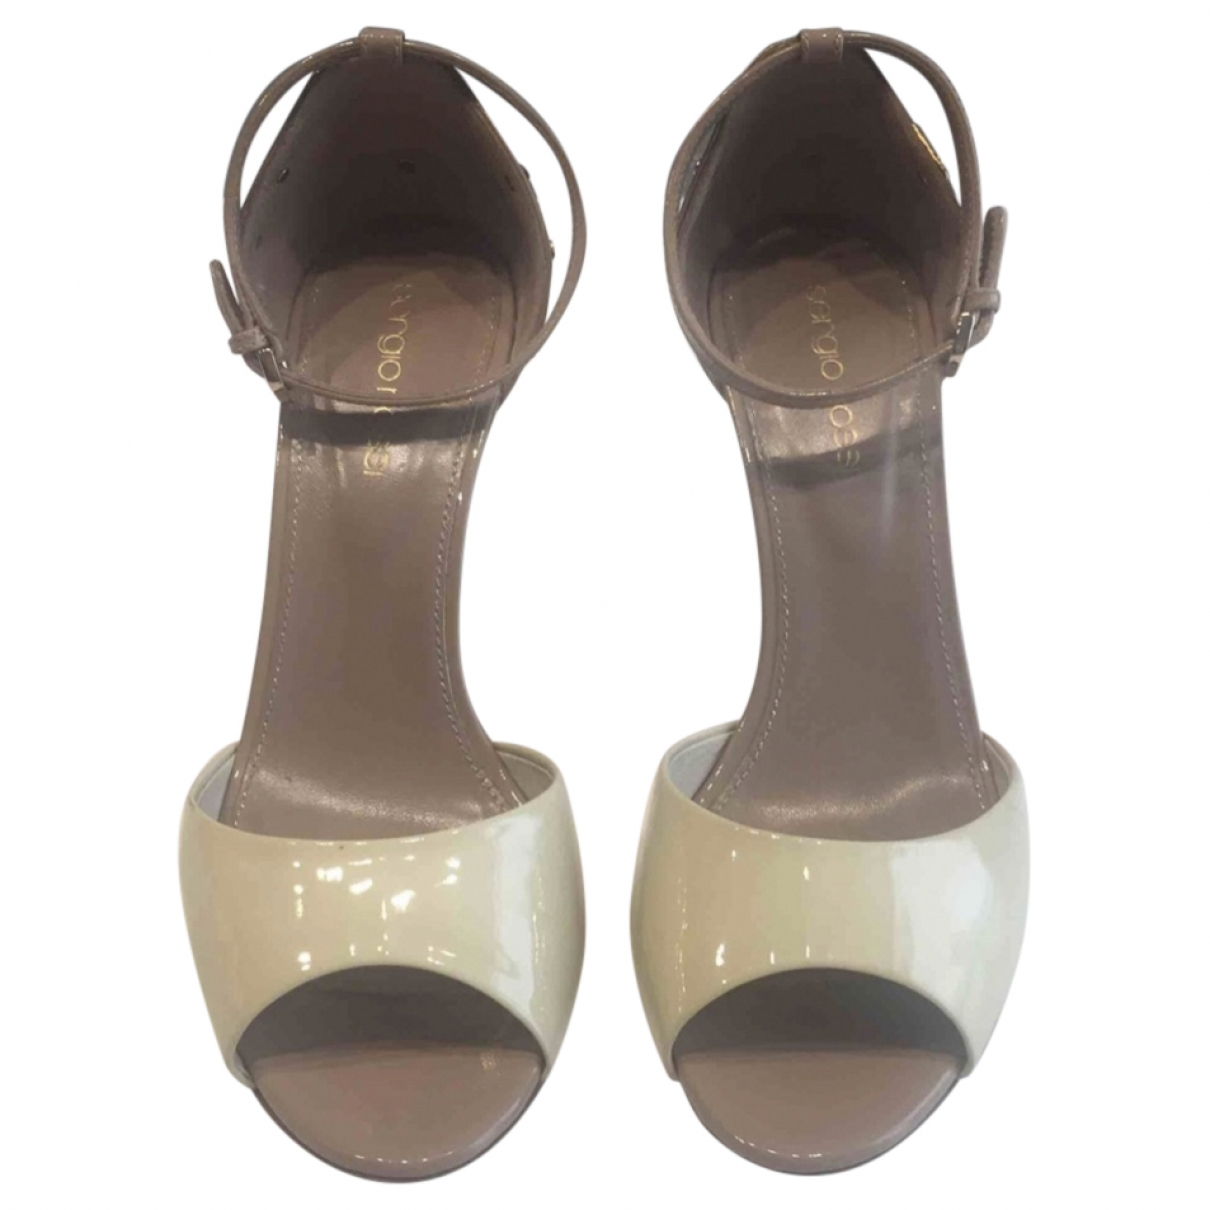 Sergio Rossi \N Beige Patent leather Sandals for Women 36 IT